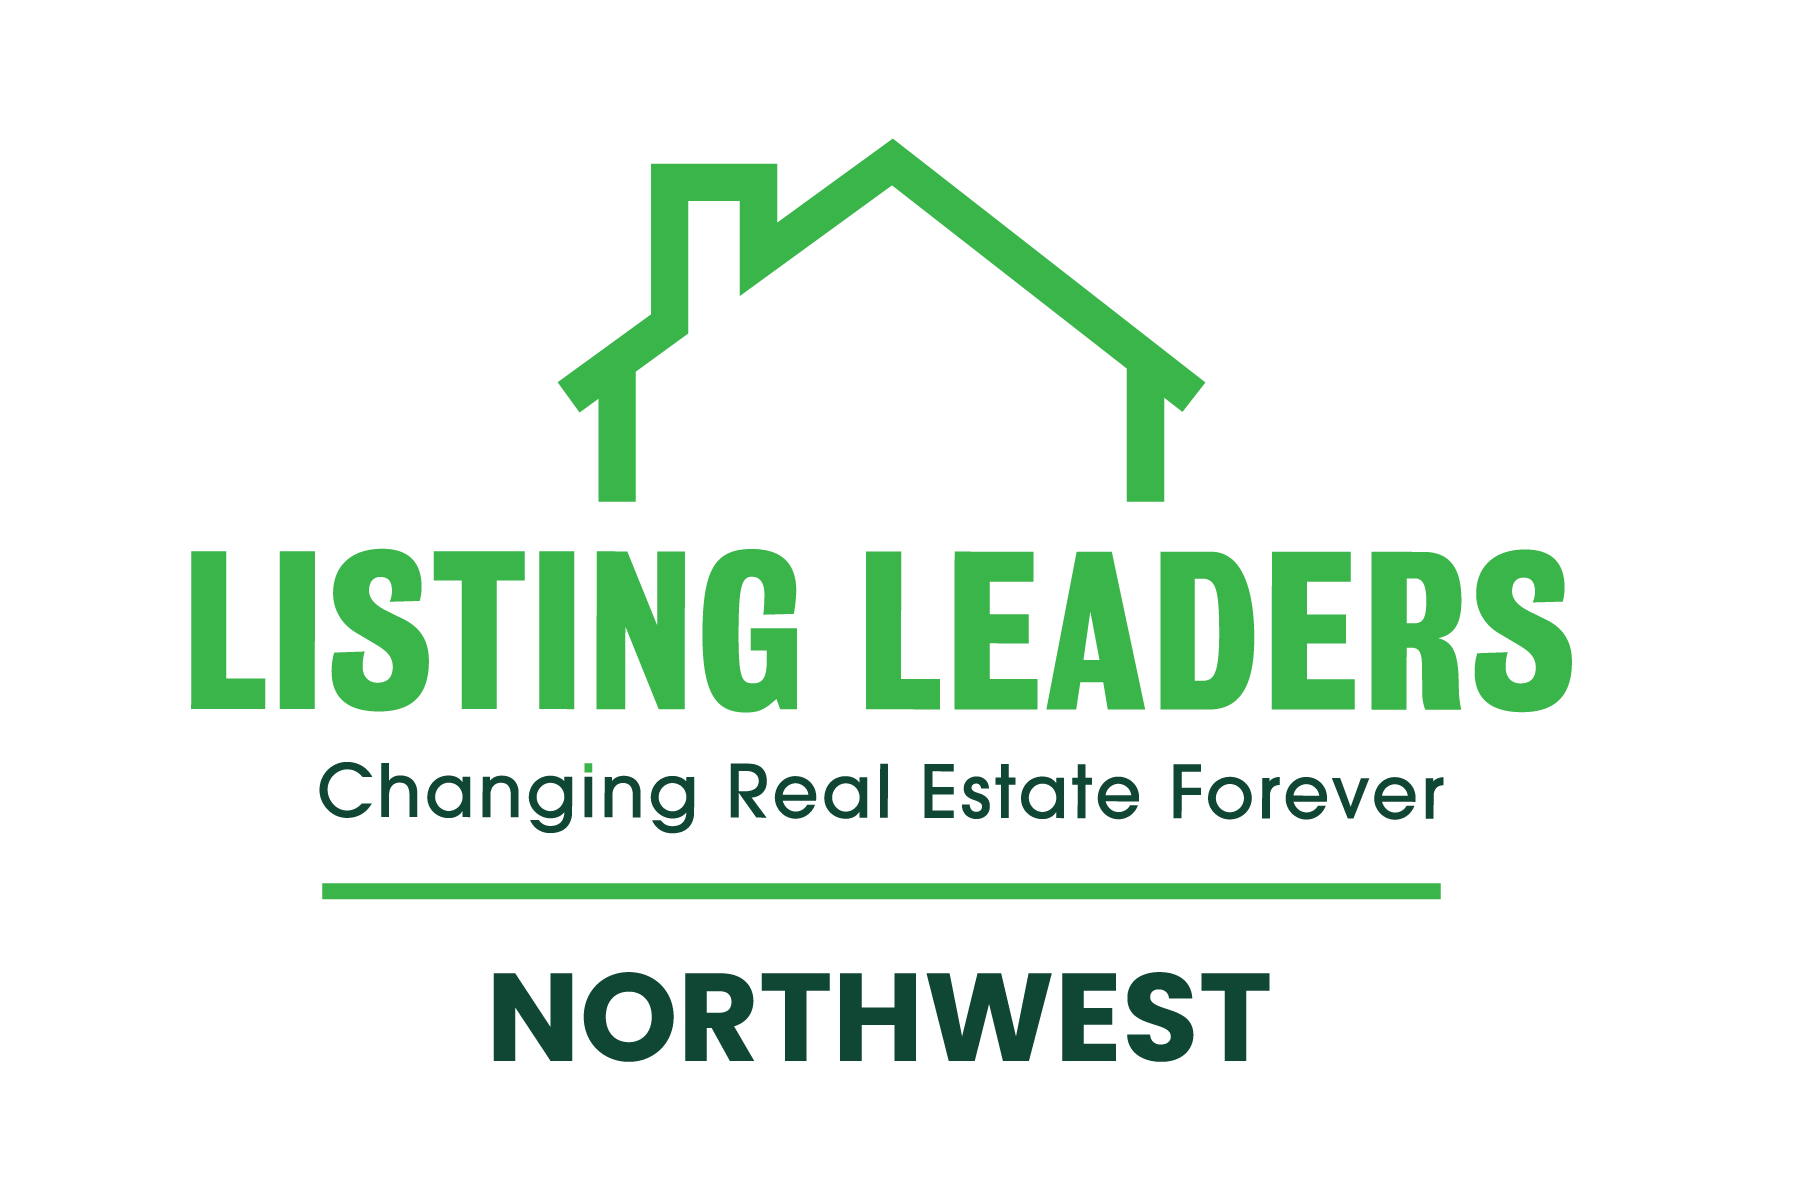 Listing Leaders NW